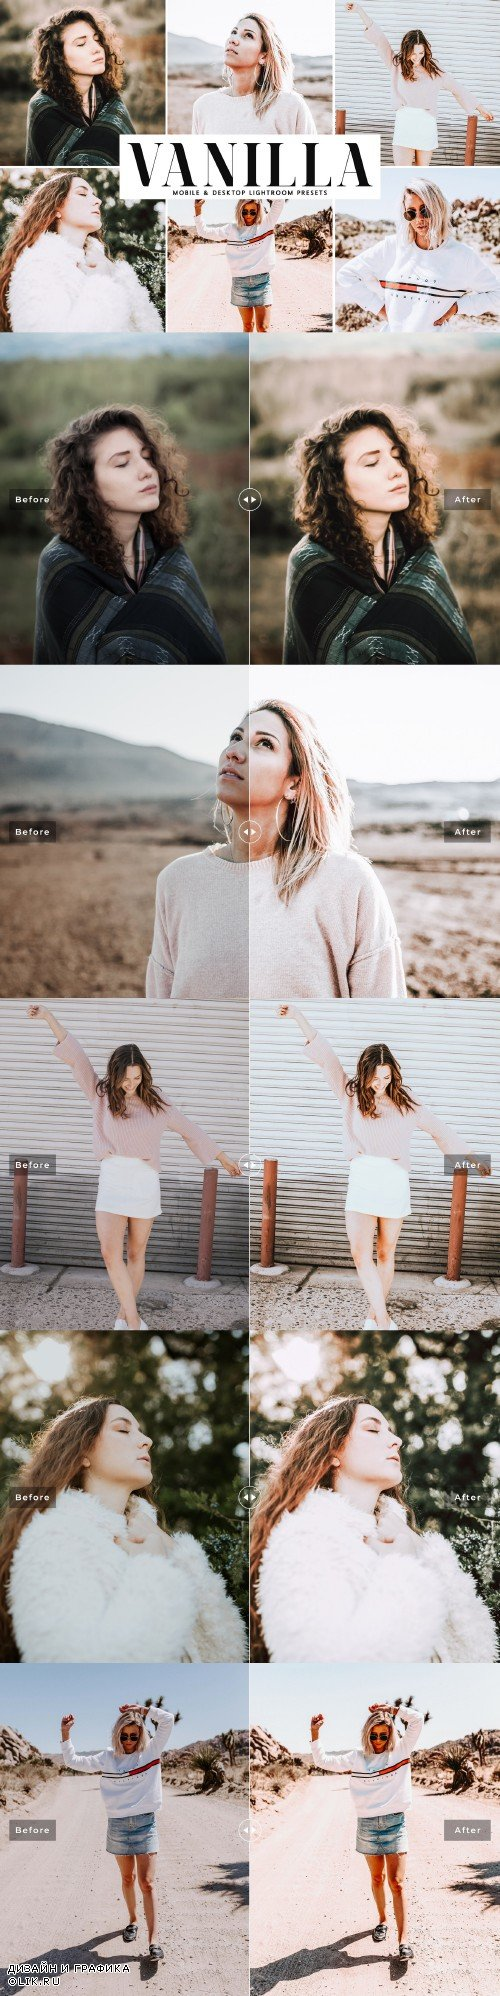 Vanilla Lightroom Presets Pack - 4040521